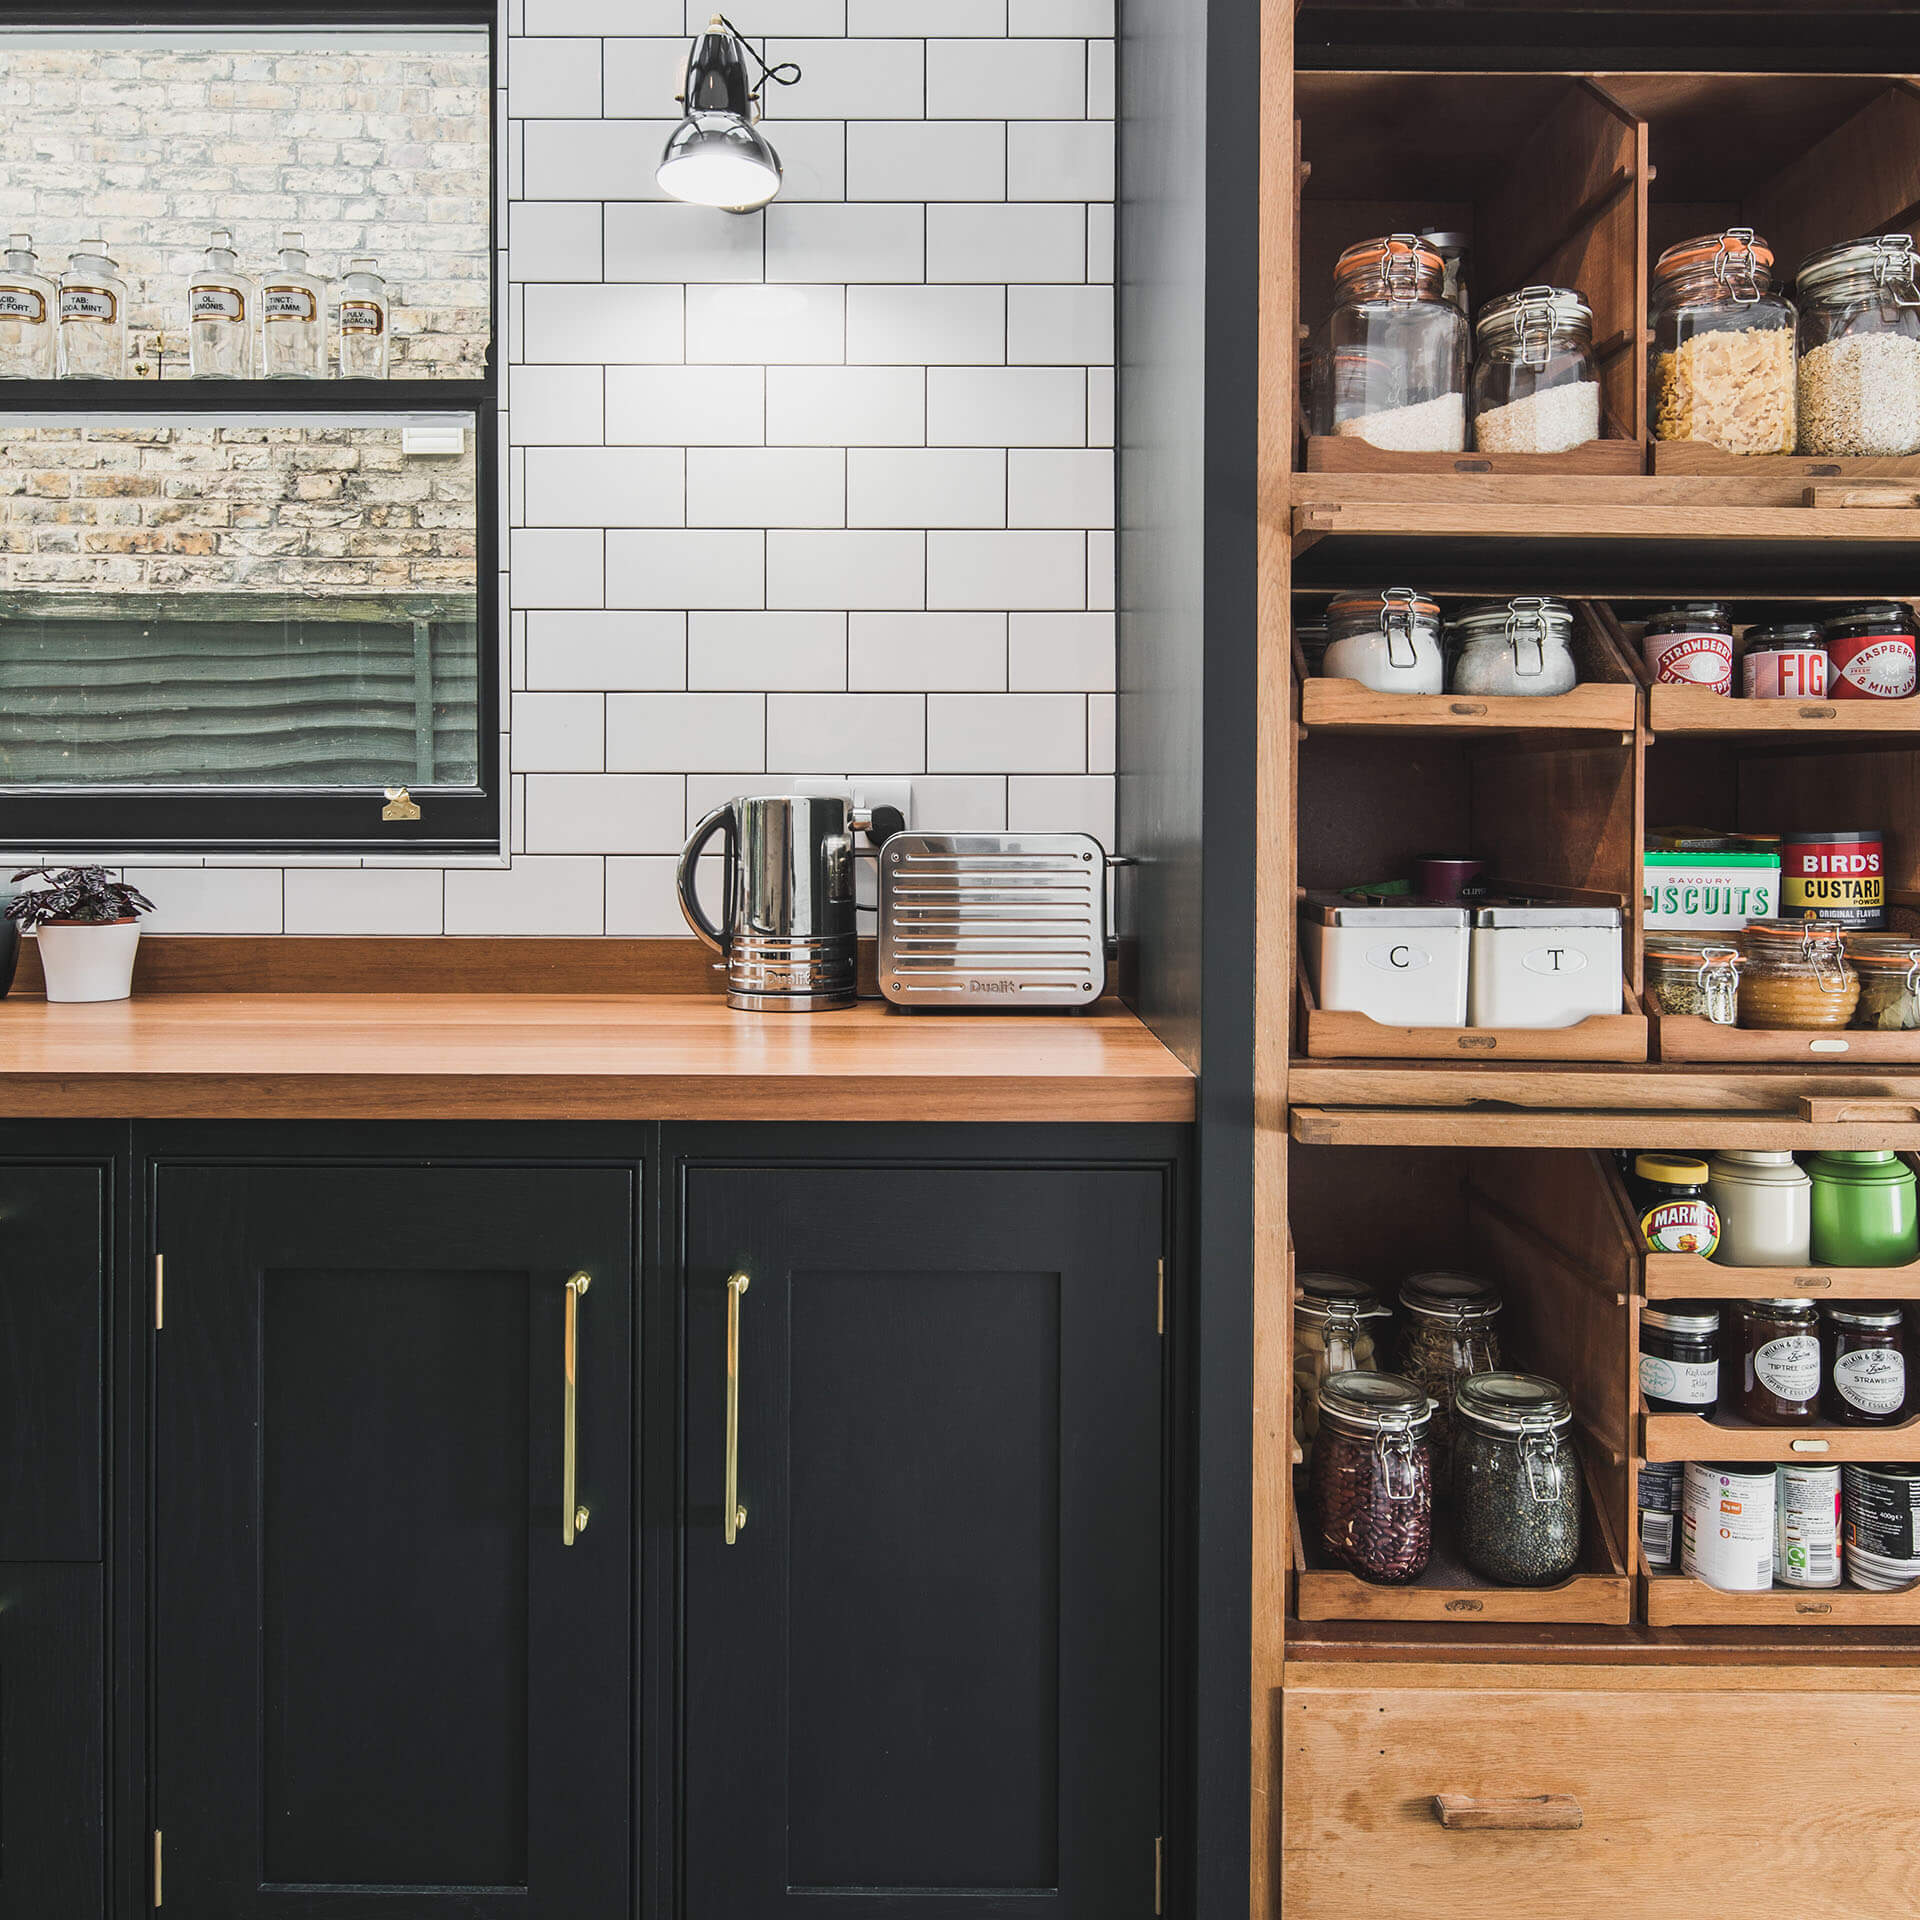 Green Kitchen Units Uk: 8 Kitchen Design Trends For 2019